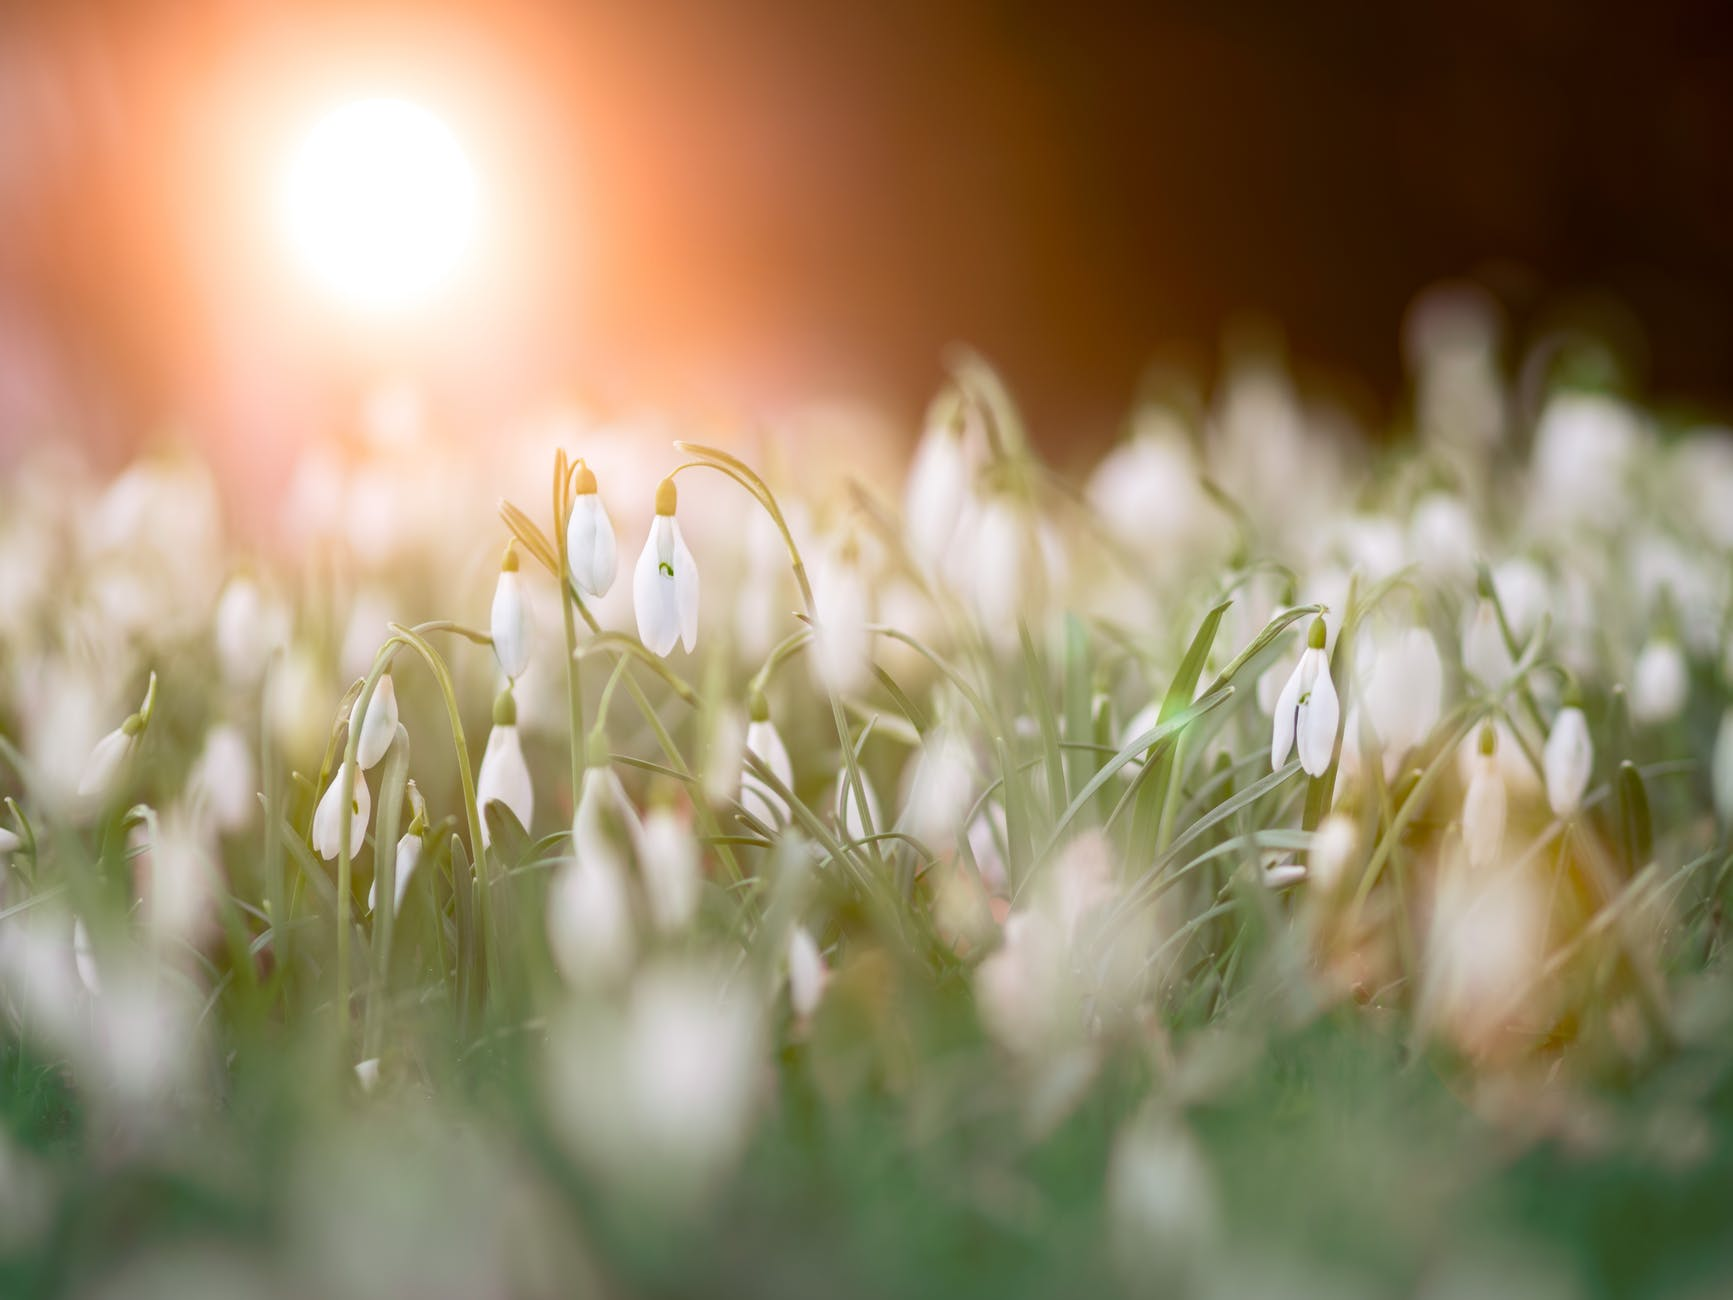 close up photo of a bed of white flowers